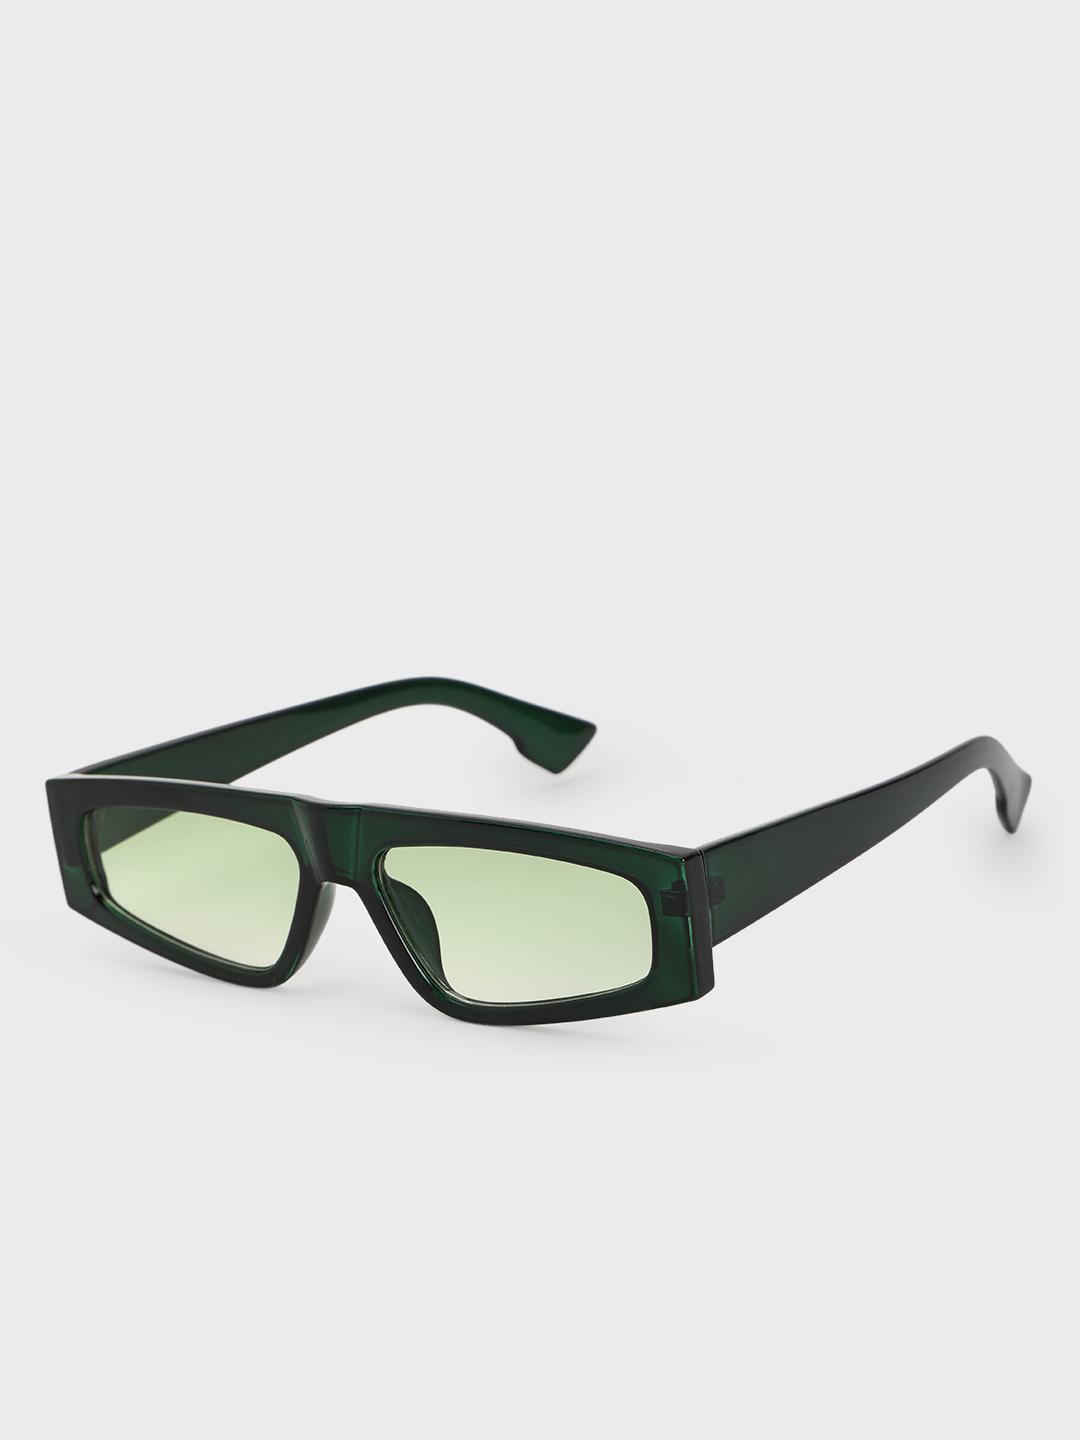 Pataaka Green Tinted Lens Retro Sunglasses 1